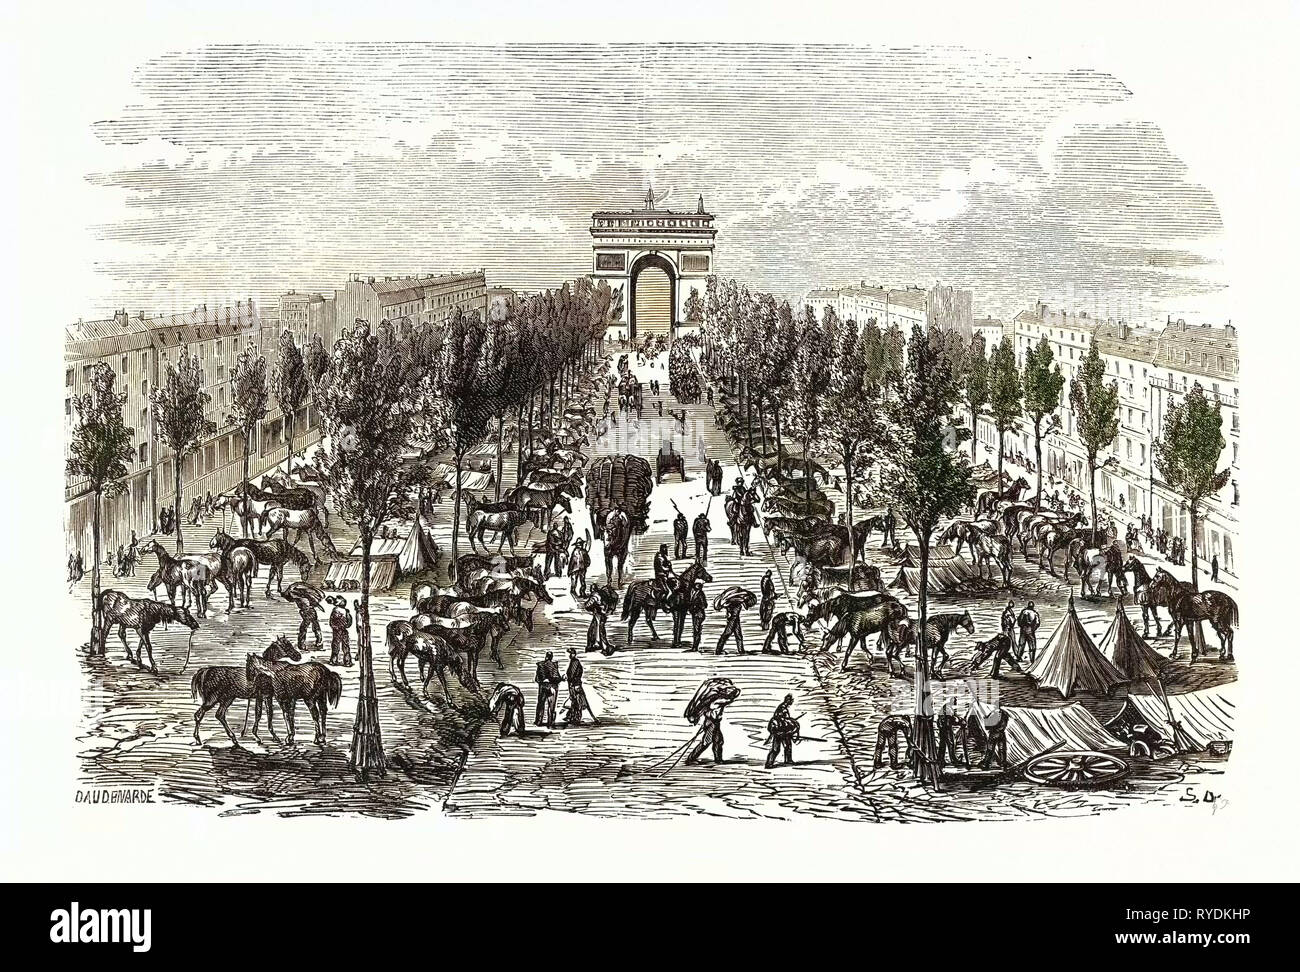 Franco-Prussian War: Artillery and Cavalry Camp on the Avenue of the Great Army, France - Stock Image